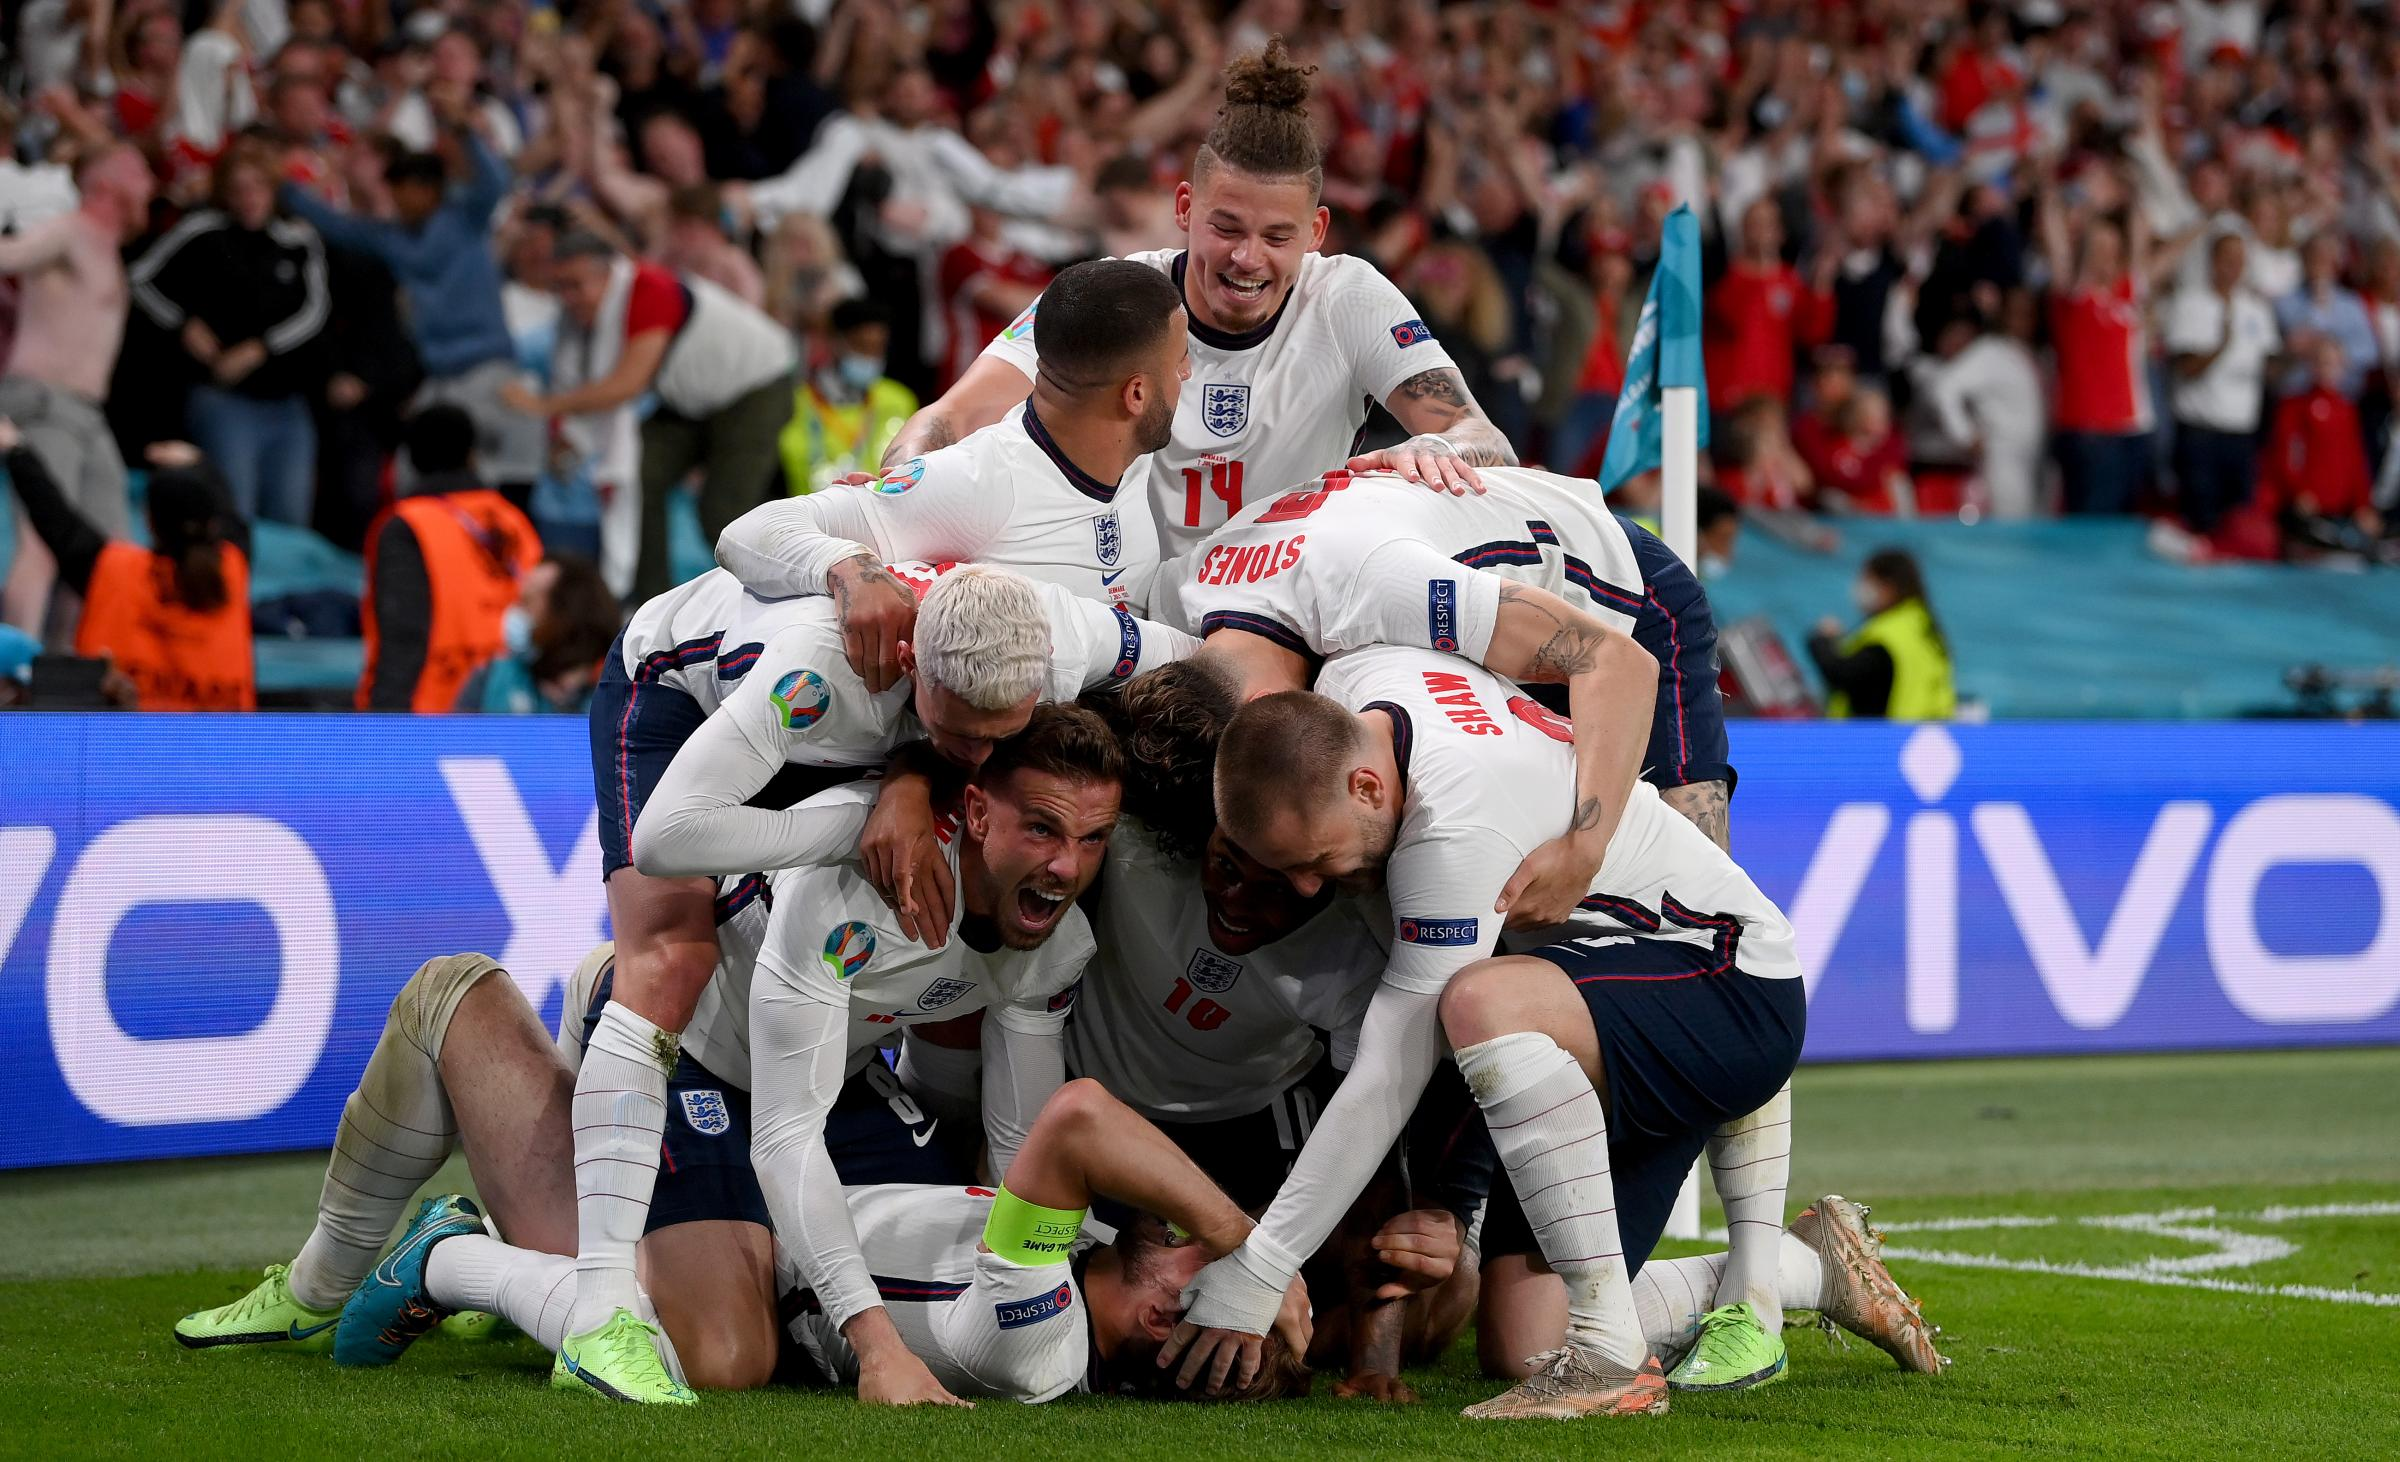 England 2 Denmark 1 (aet): Expectation meets reality at last as contentious penalty takes England to final